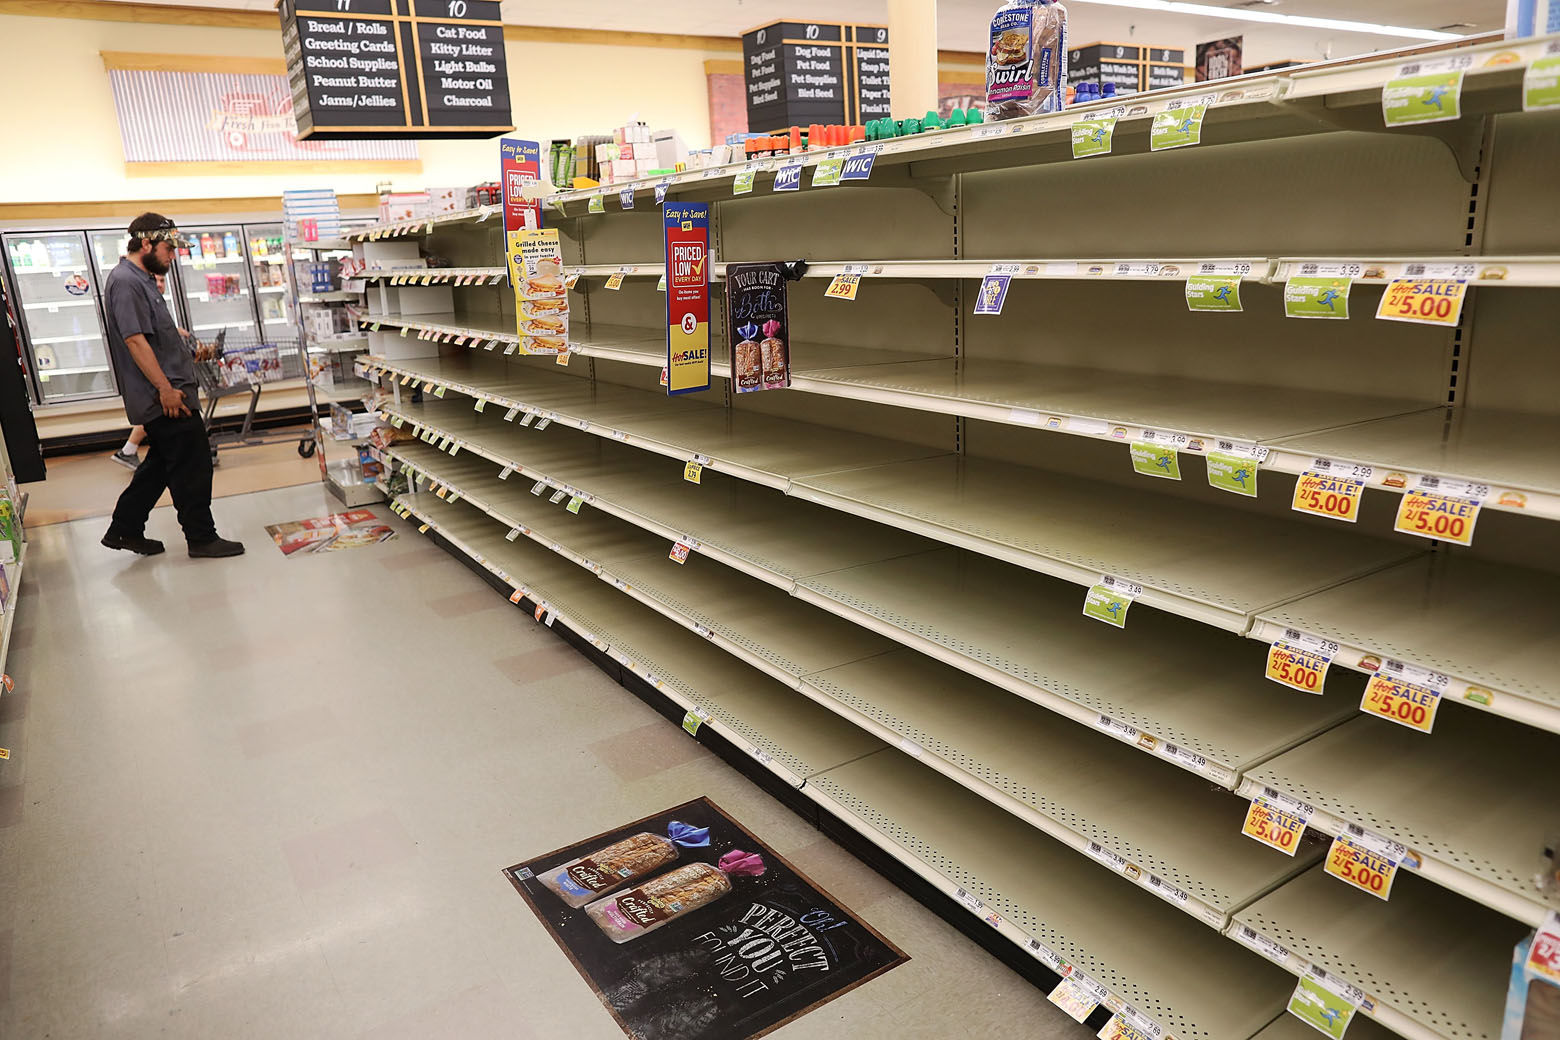 MYRTLE BEACH, SC - SEPTEMBER 11:  A store's bread shelves are bare as people stock up on food ahead of the arrival of Hurricane Florence on September 11, 2018 in Myrtle Beach, South Carolina. Florence, already packing 130 mph winds, is expected to make landfall by late Thursday at near Category 5 strength along the Virginia, North Carolina and South Carolina coastline.  (Photo by Joe Raedle/Getty Images)